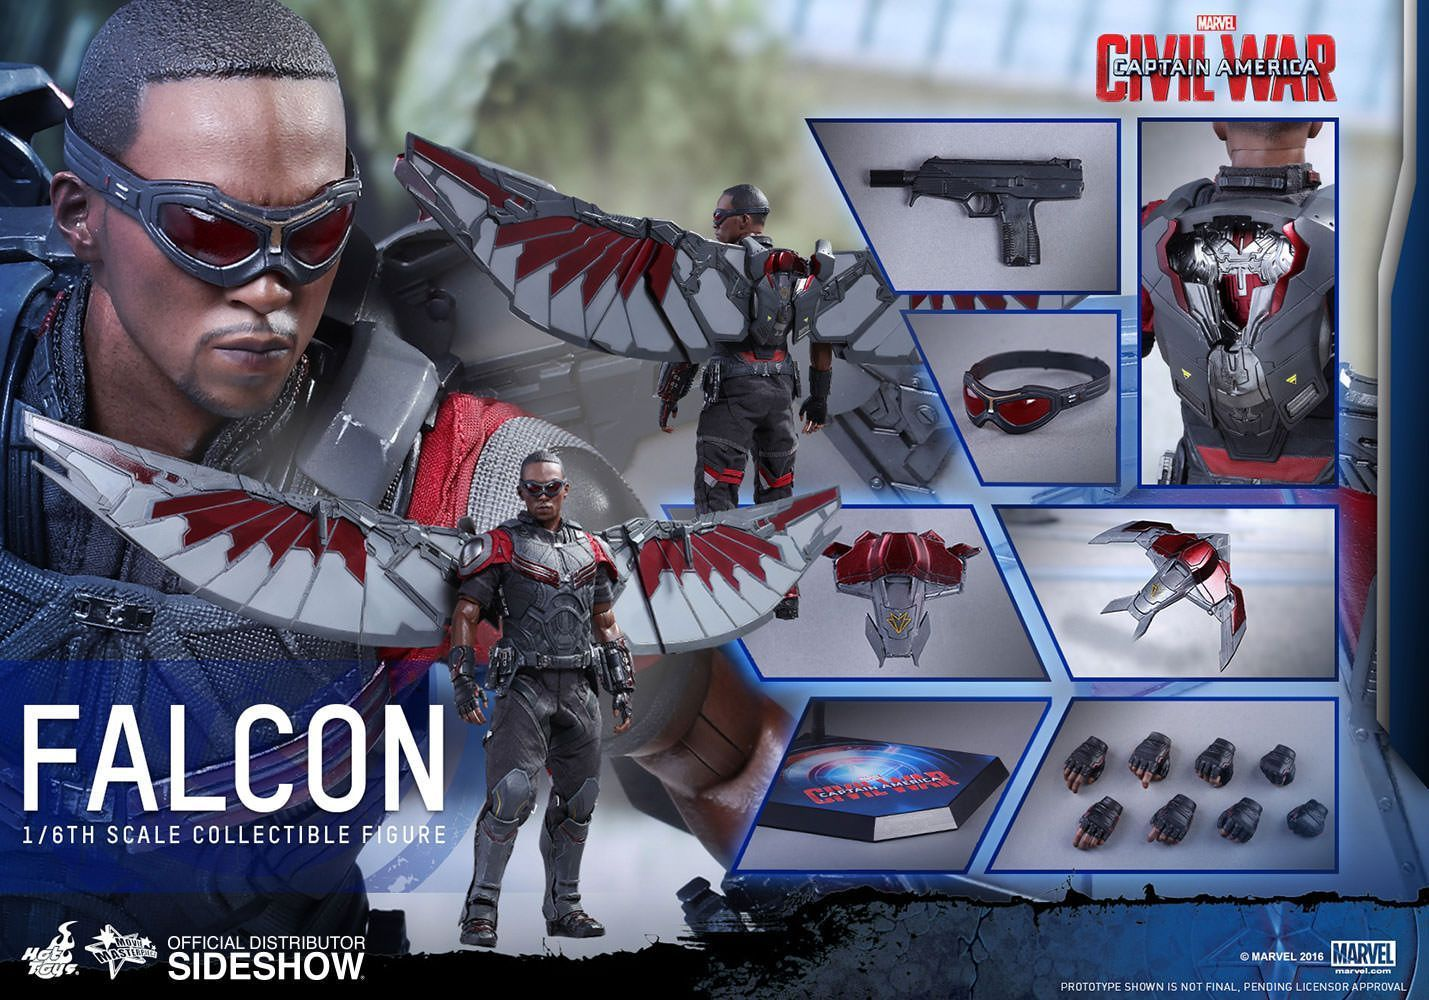 Hot Toys One Sixth Scale Civil War Falcon Figure